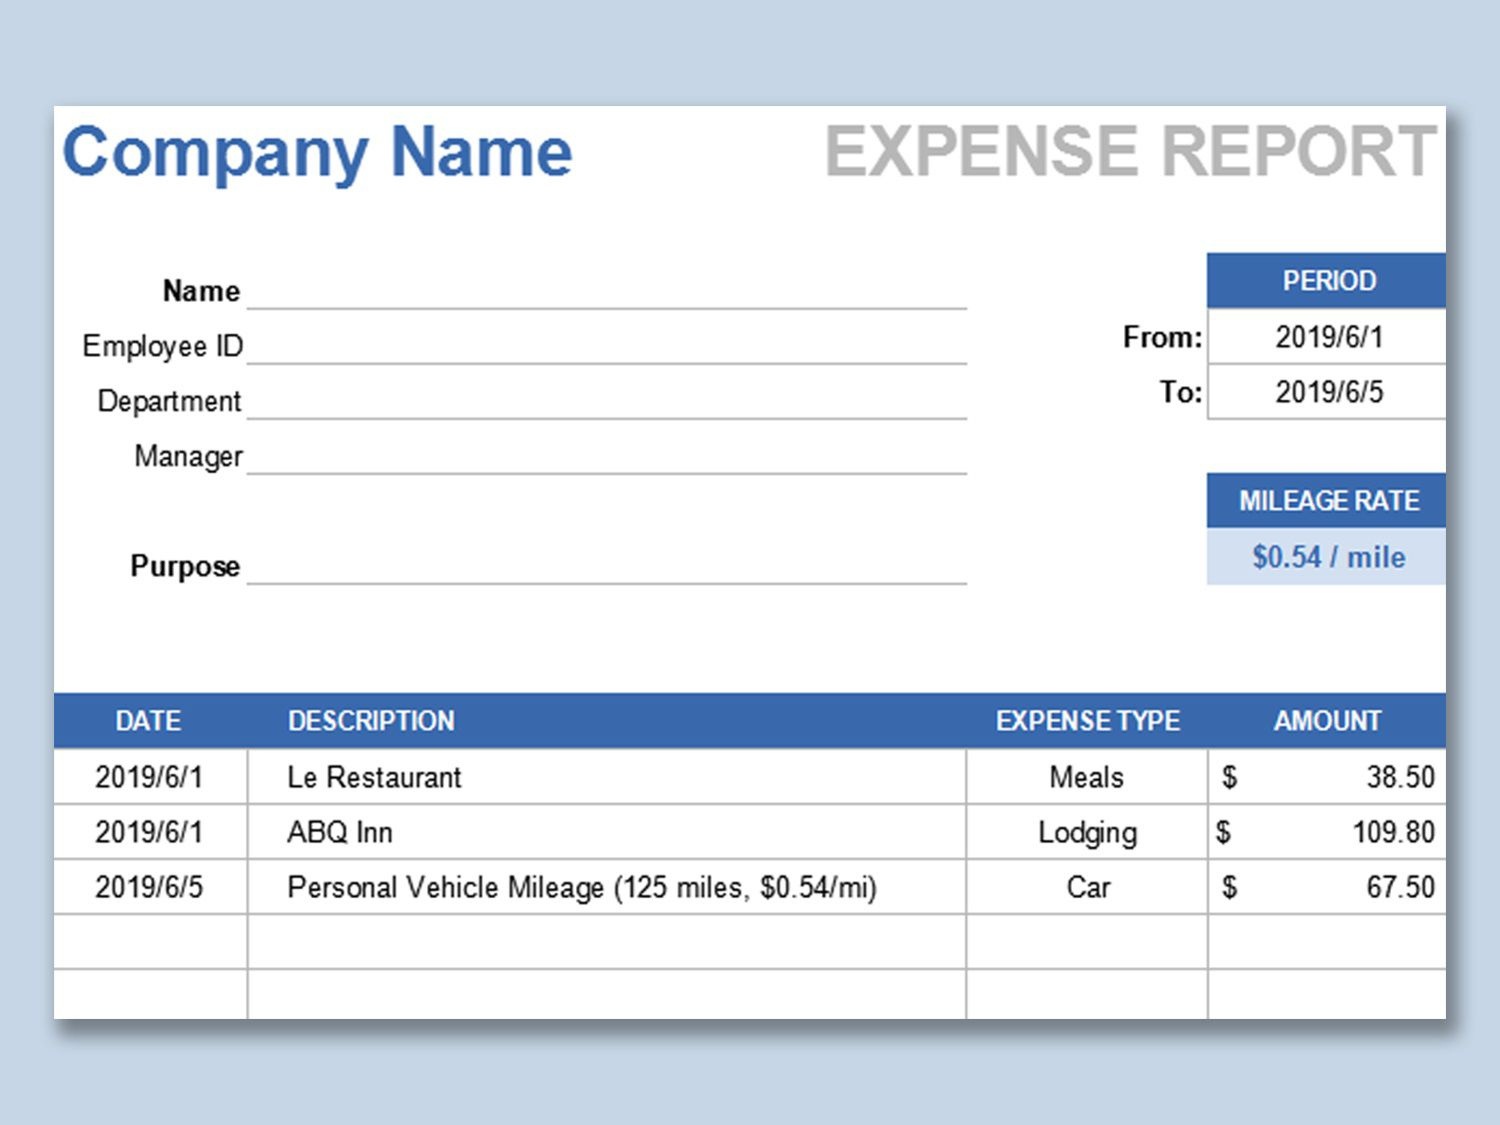 002 Phenomenal Expense Report Template Free High Def  Pdf Excel DownloadFull